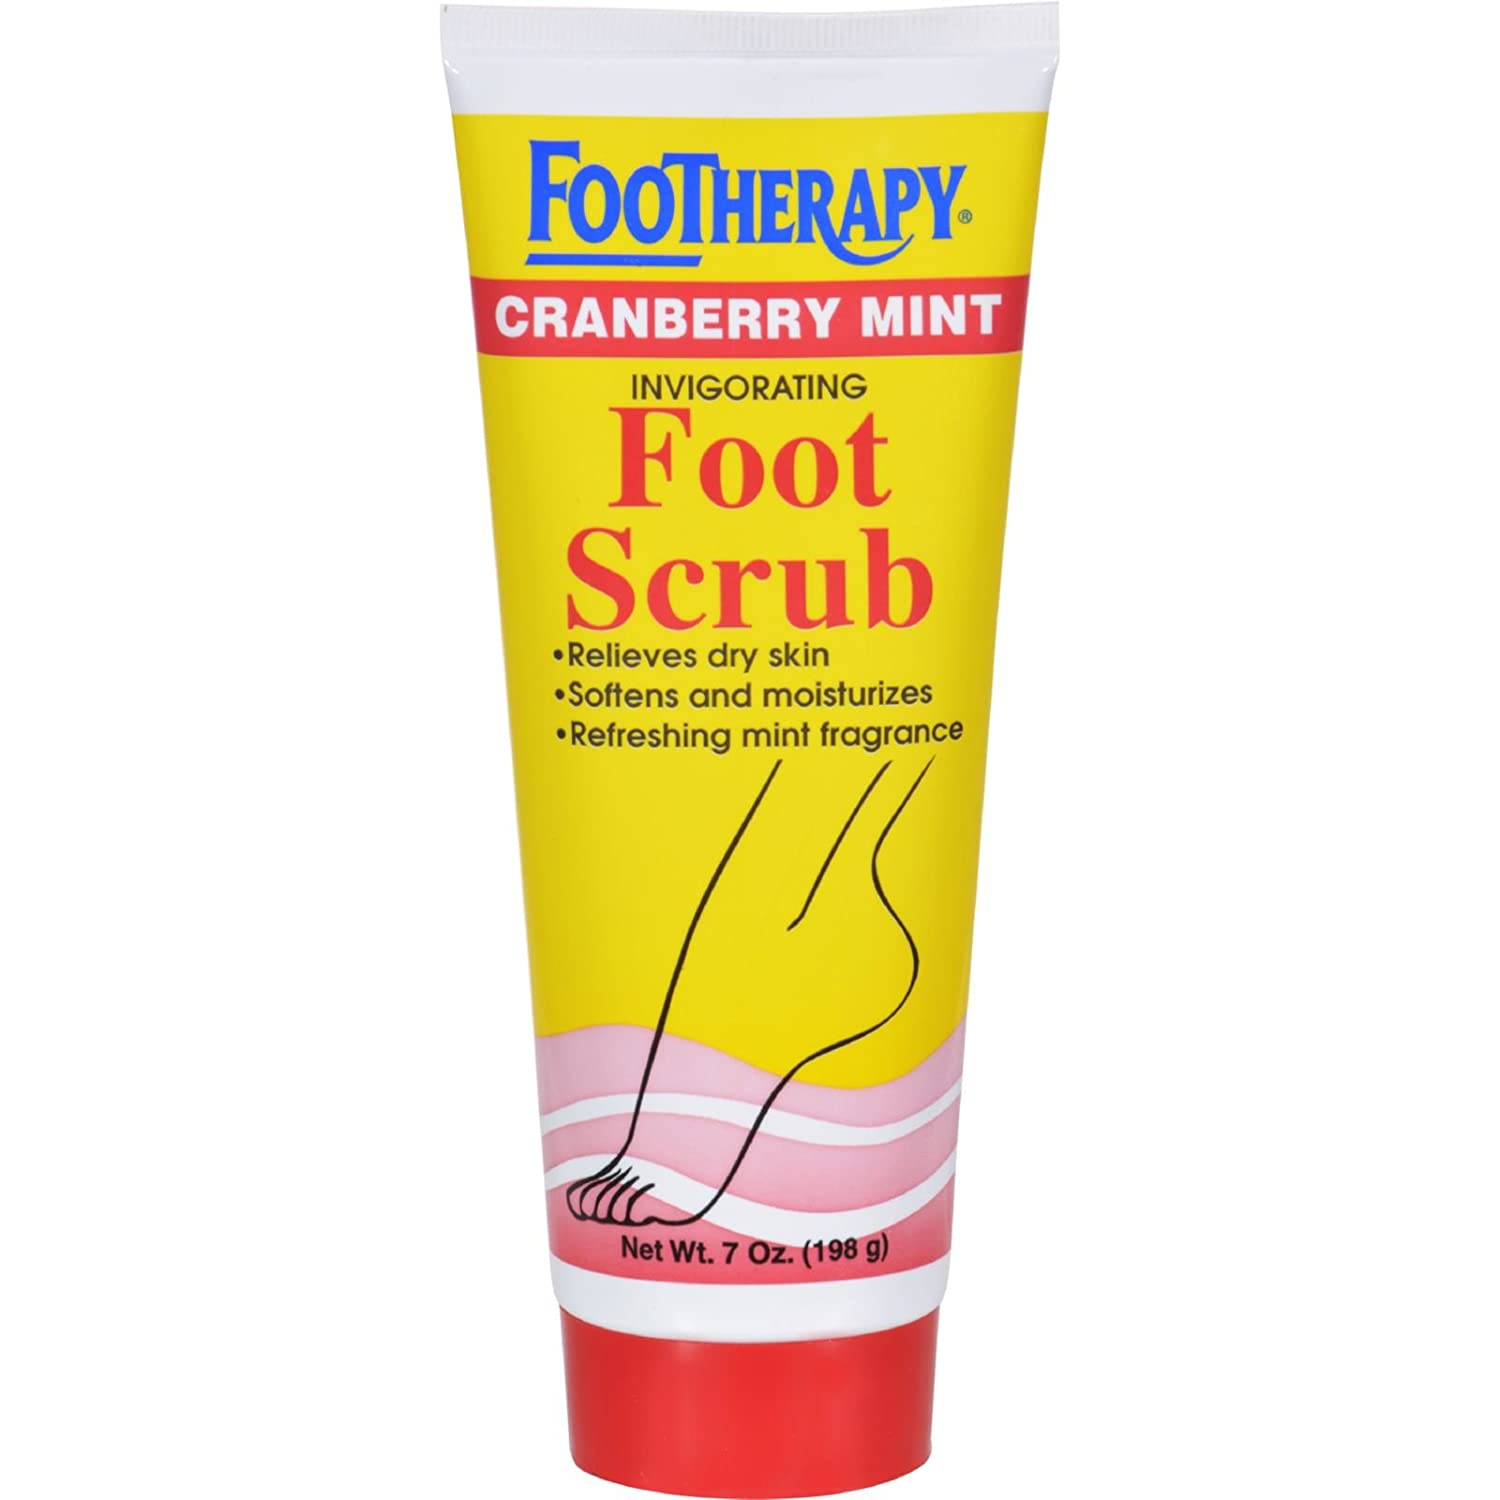 Footherapy Cranberry Mint Foot Scrub Queen Helene 7 oz Scrub 079896220649